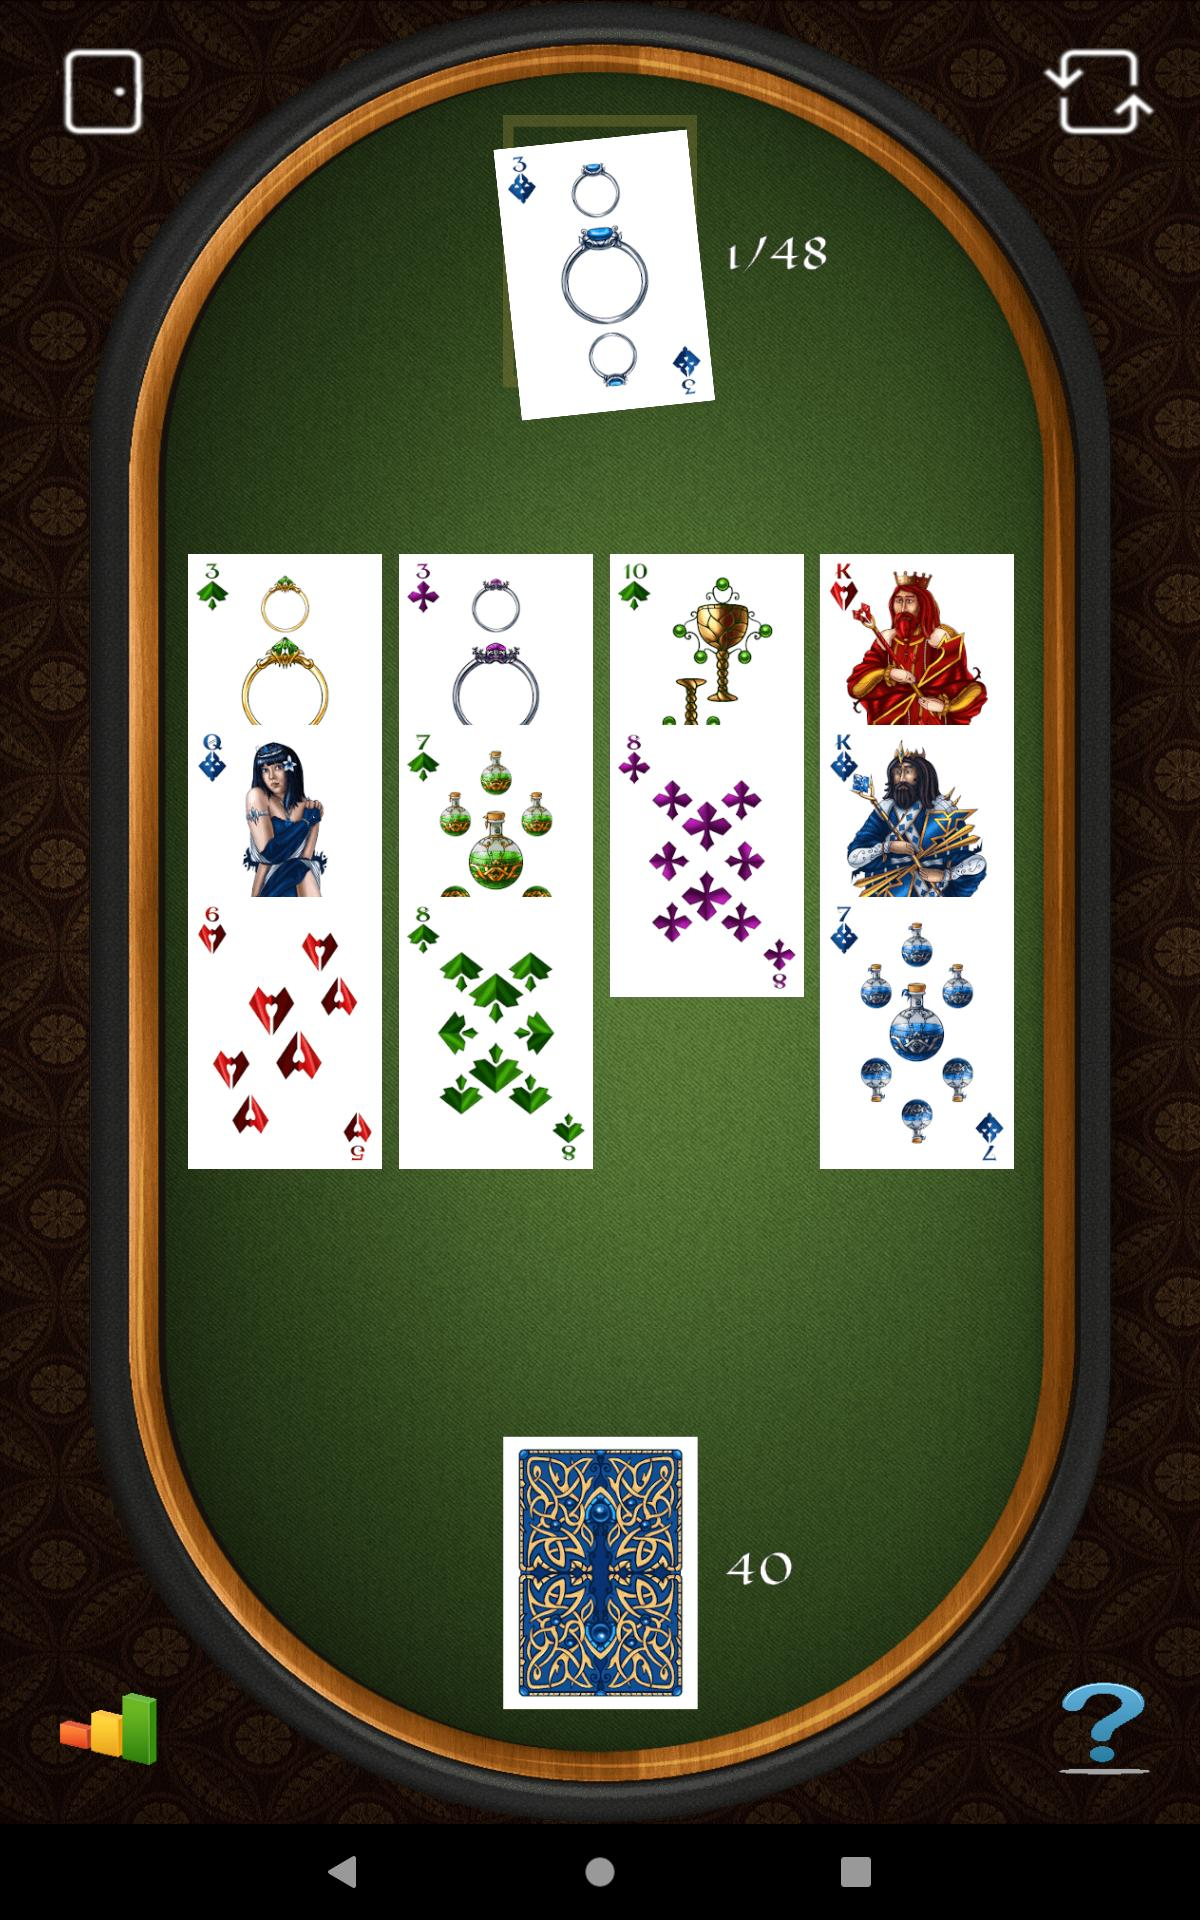 Aces Up Solitaire 5.4 Screenshot 17